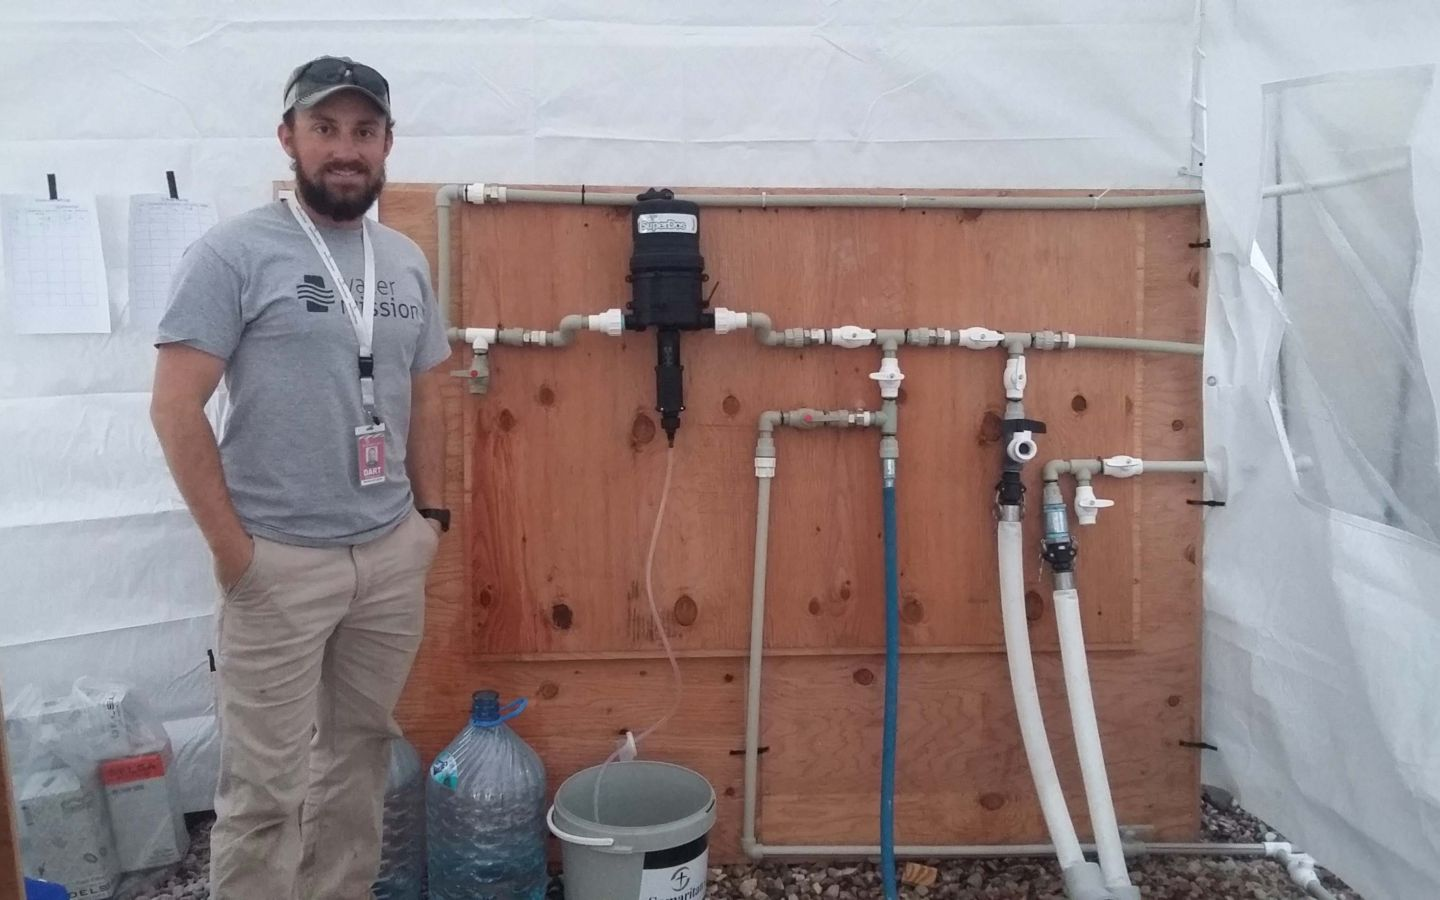 Tim works to implement a safe water solution Iraq.